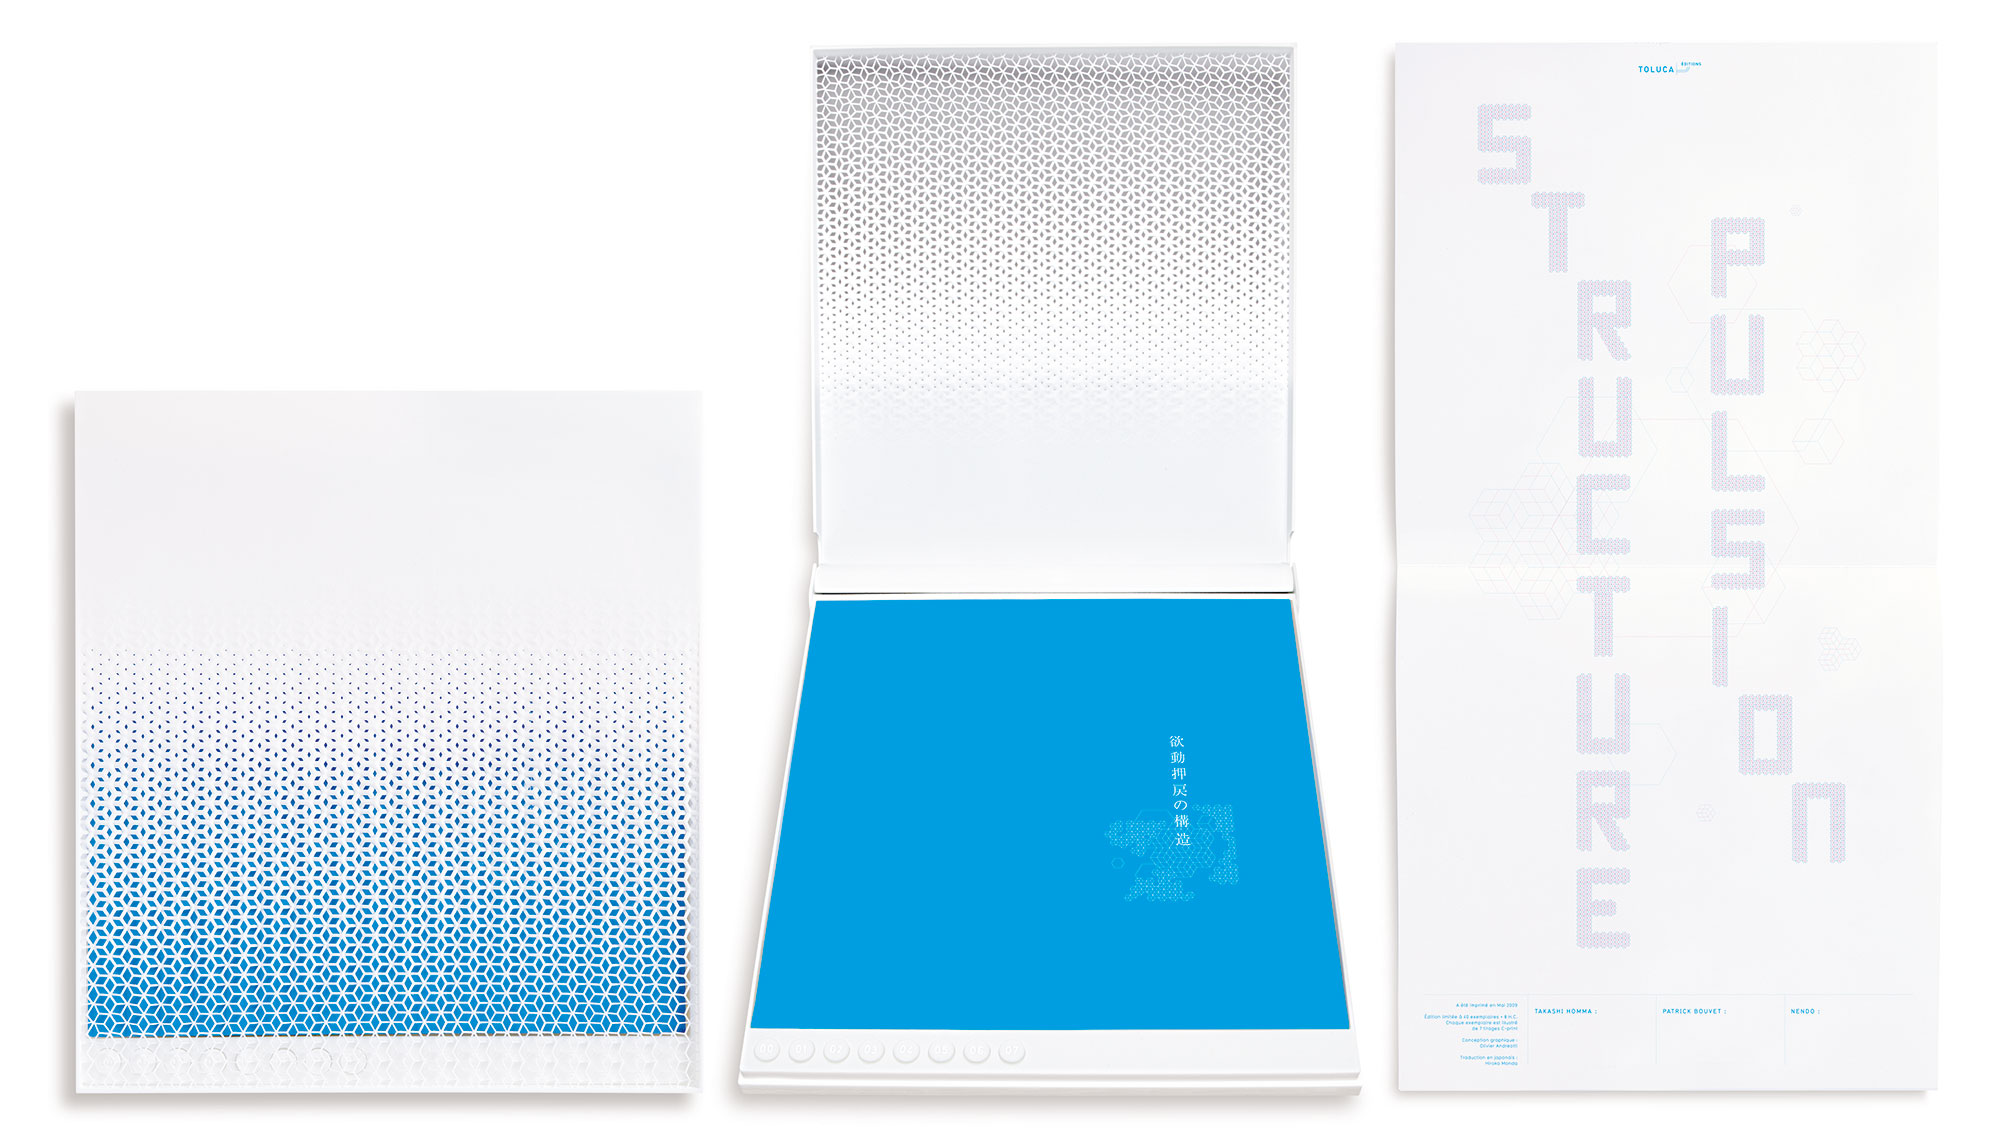 Takashi Homma ホンマタカシ (photos), Patrick Bouvet (text), Nendo (case), Structure Pulsion, 2009 (38 x 34 x 3,5 cm)